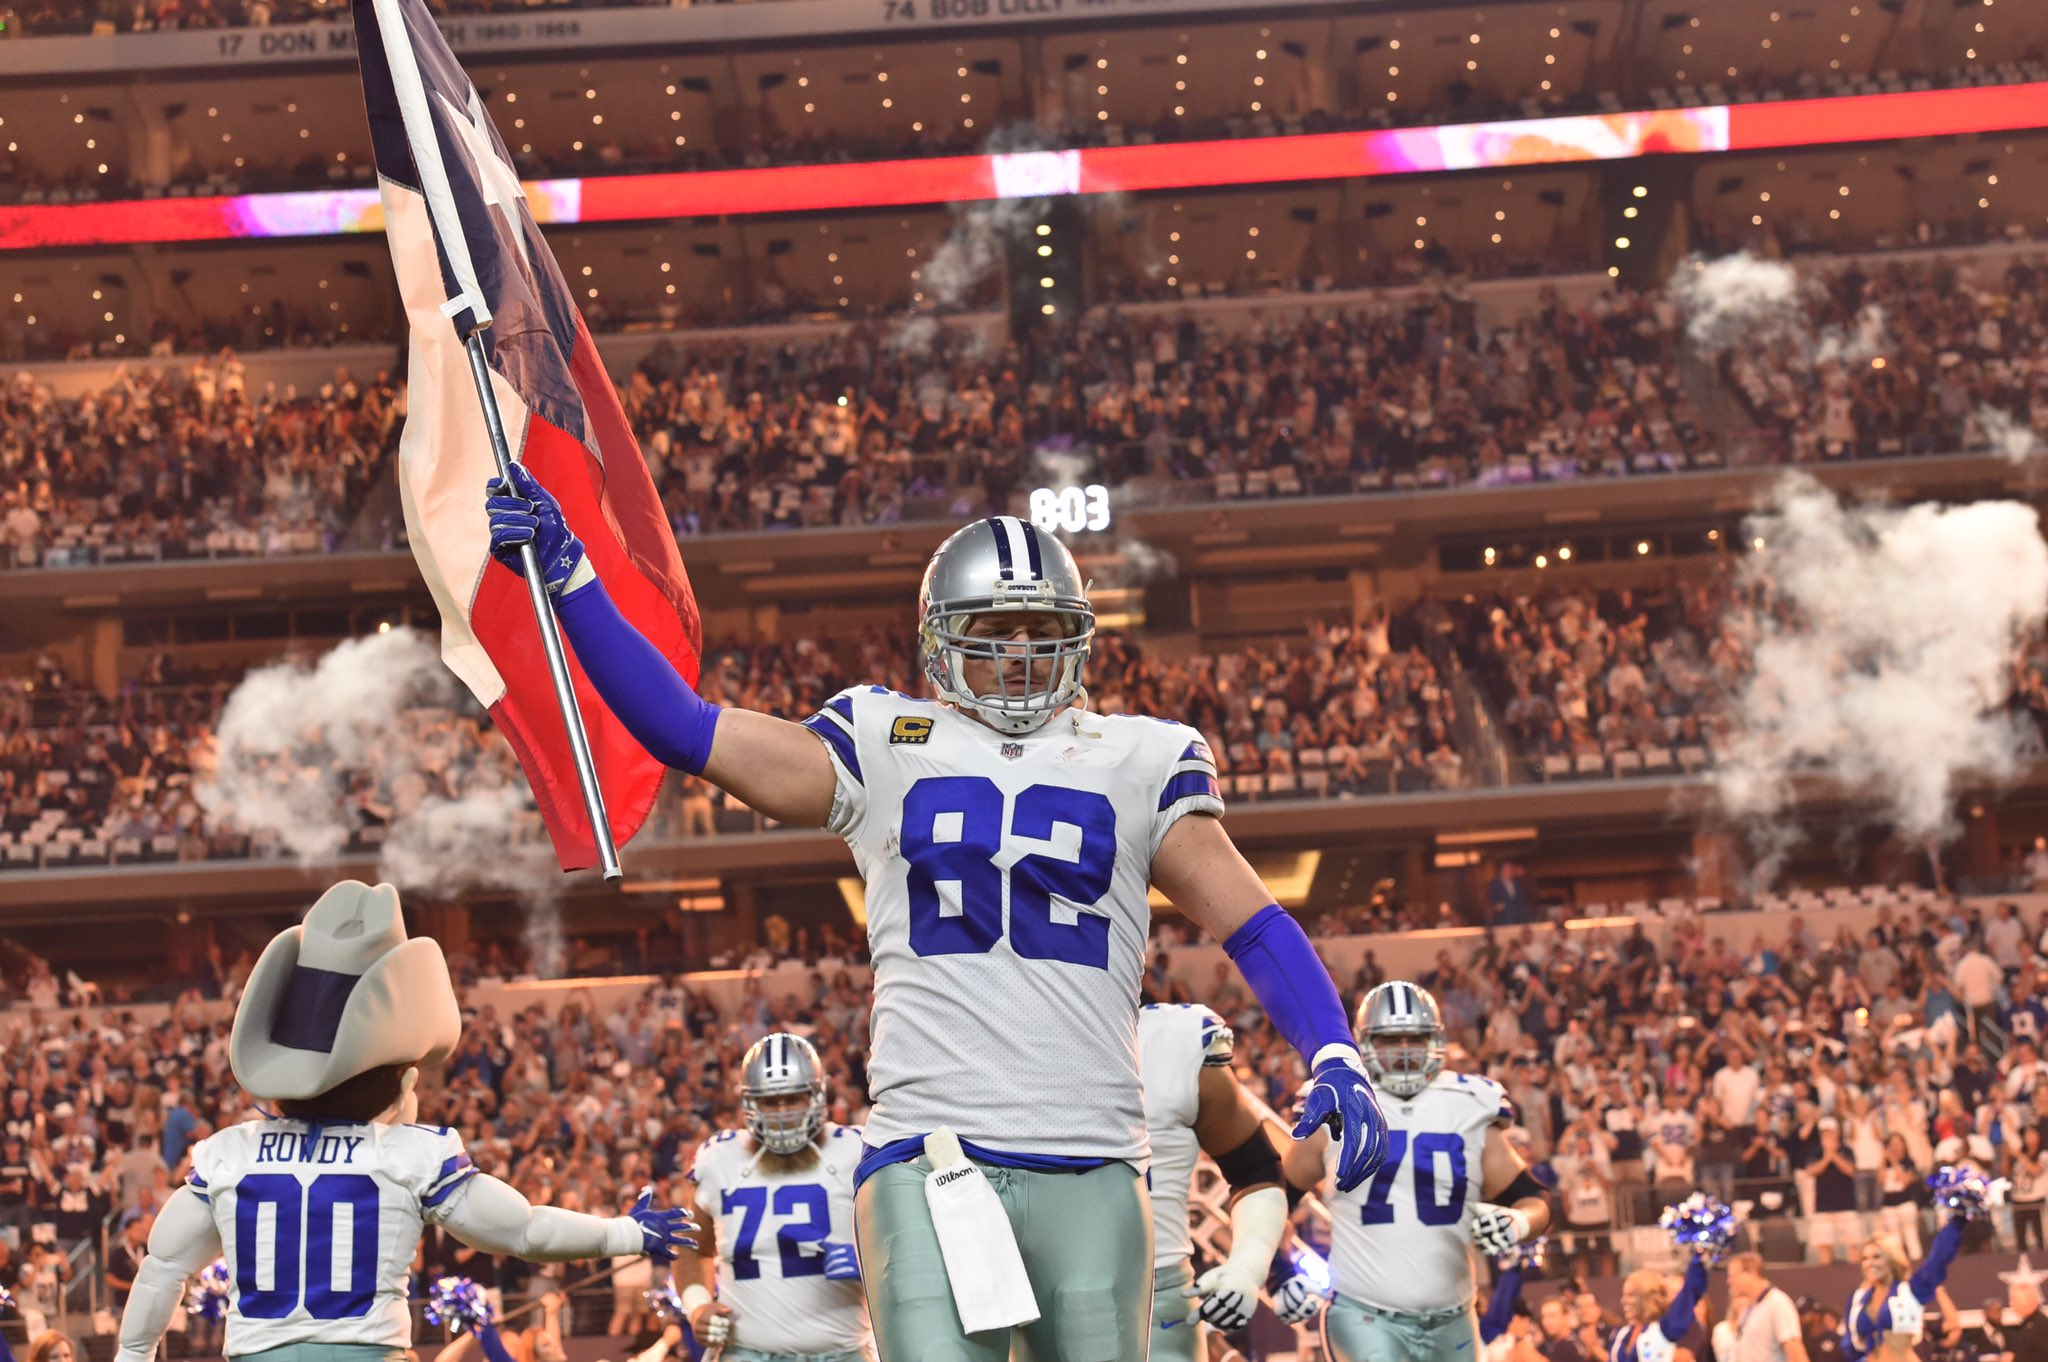 .@JasonWitten running out with a Texas flag during player intros. #NYGvsDAL #Cowboys4Texas https://t.co/wk6sIYCq8j